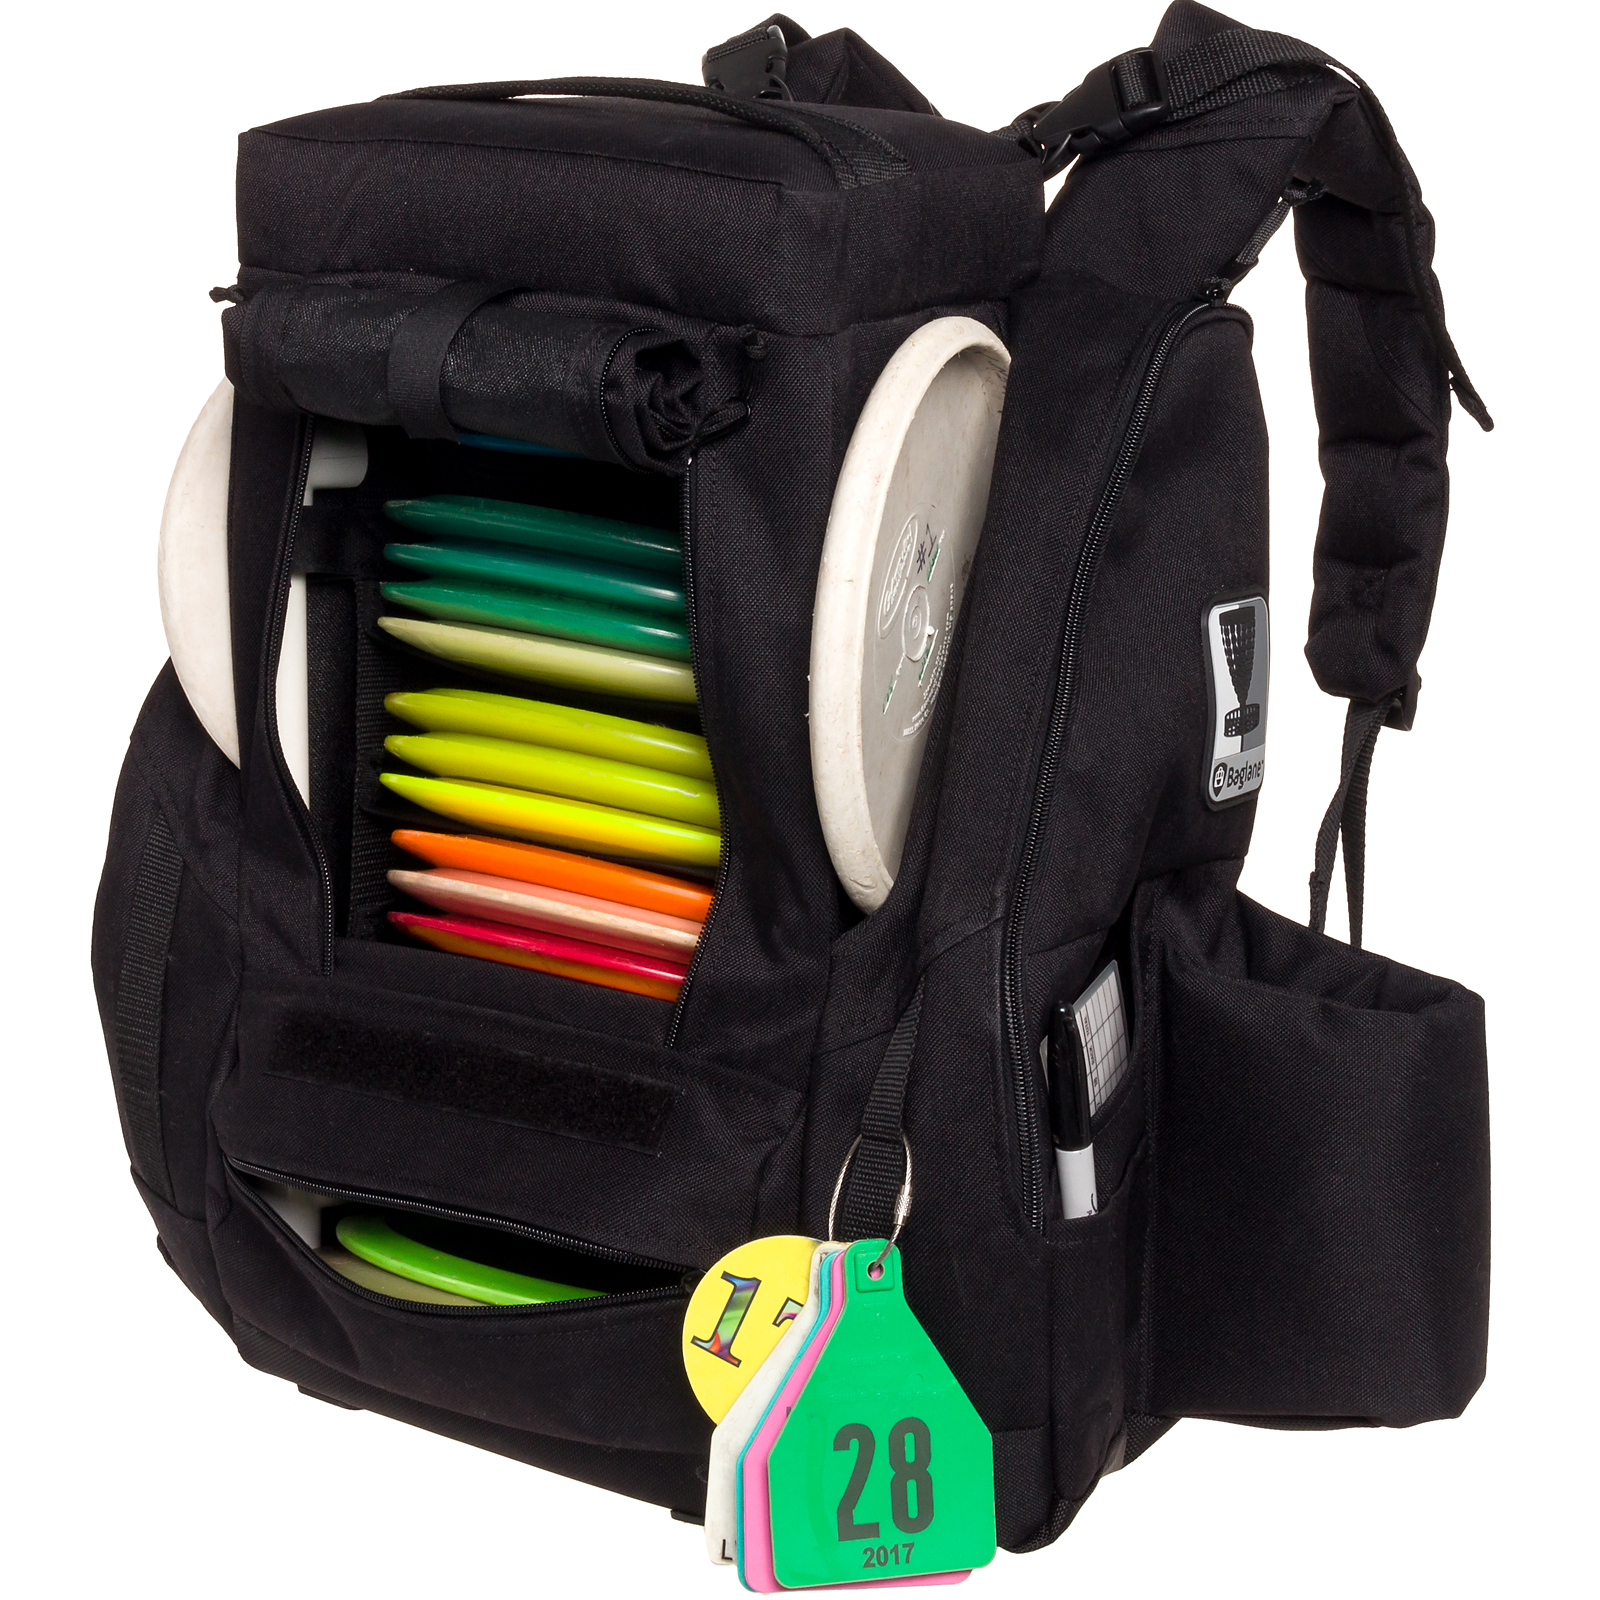 Keeps Discs Organized The Interior Of Fusion Pro Disc Golf Backpack Features A Cradle Style Rack Which Carries Stacked Vertically And